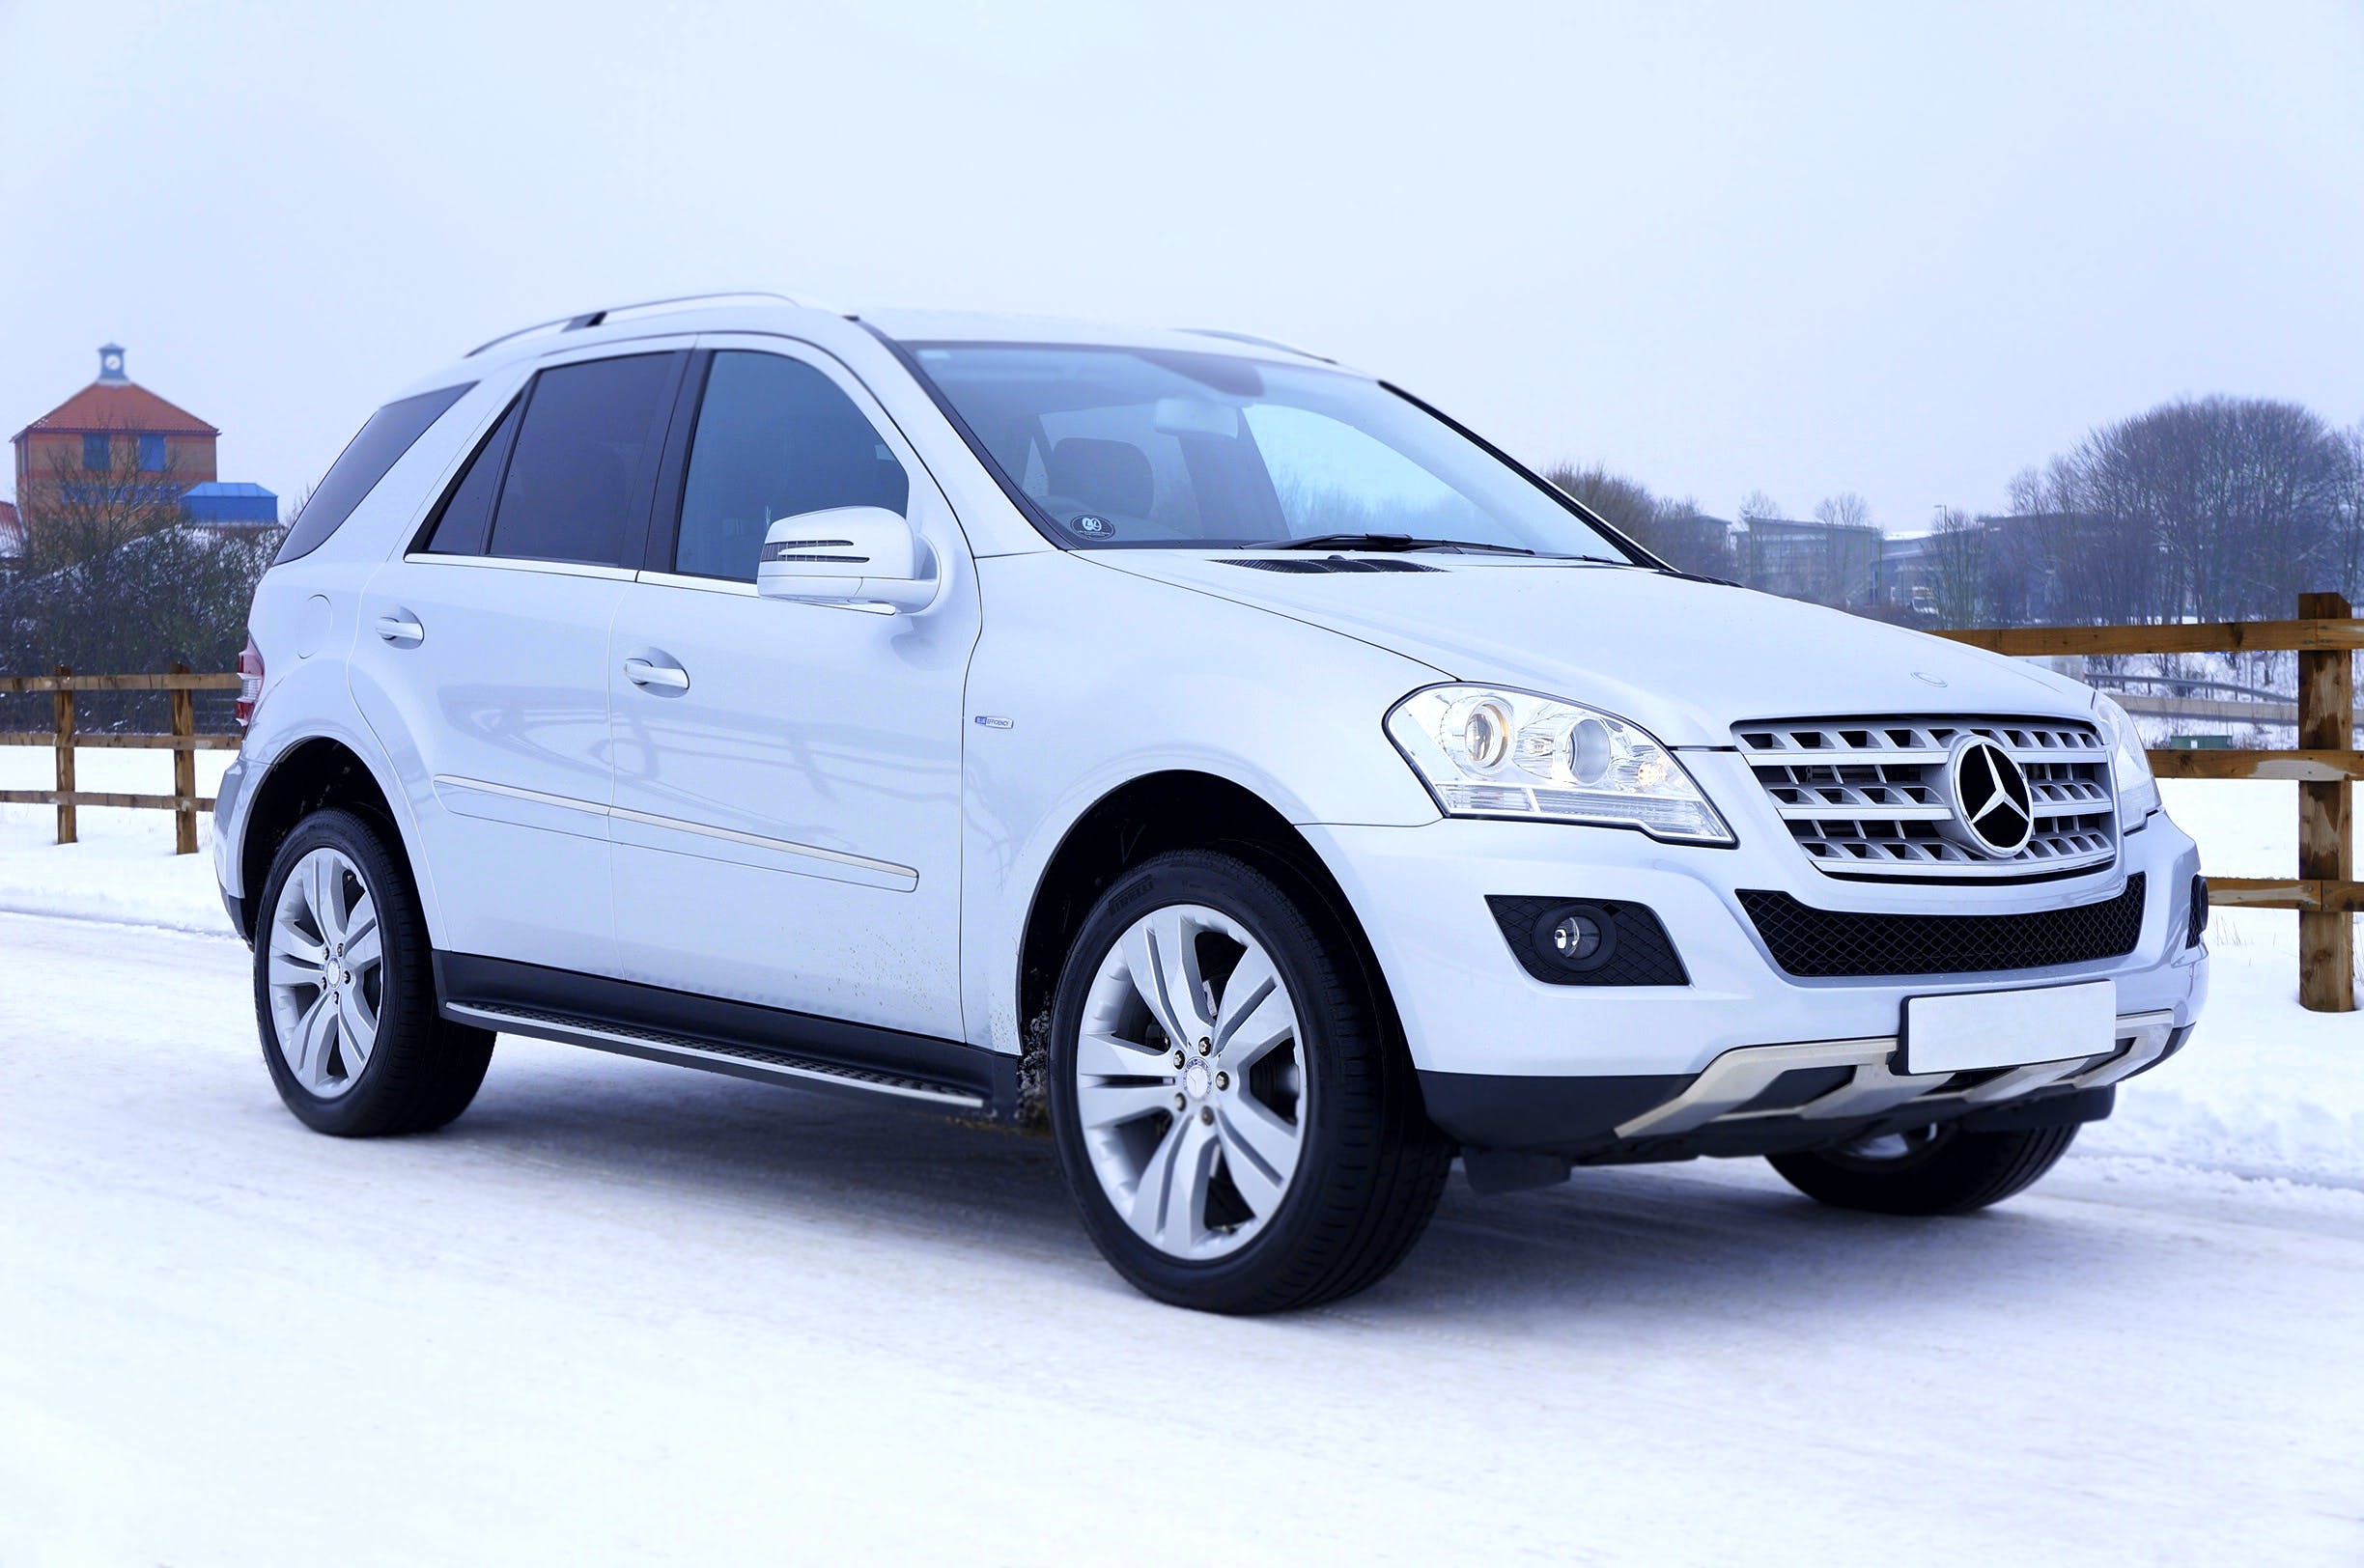 White Mercedes-benz Suv Parked Beside Brown Wooden Fence